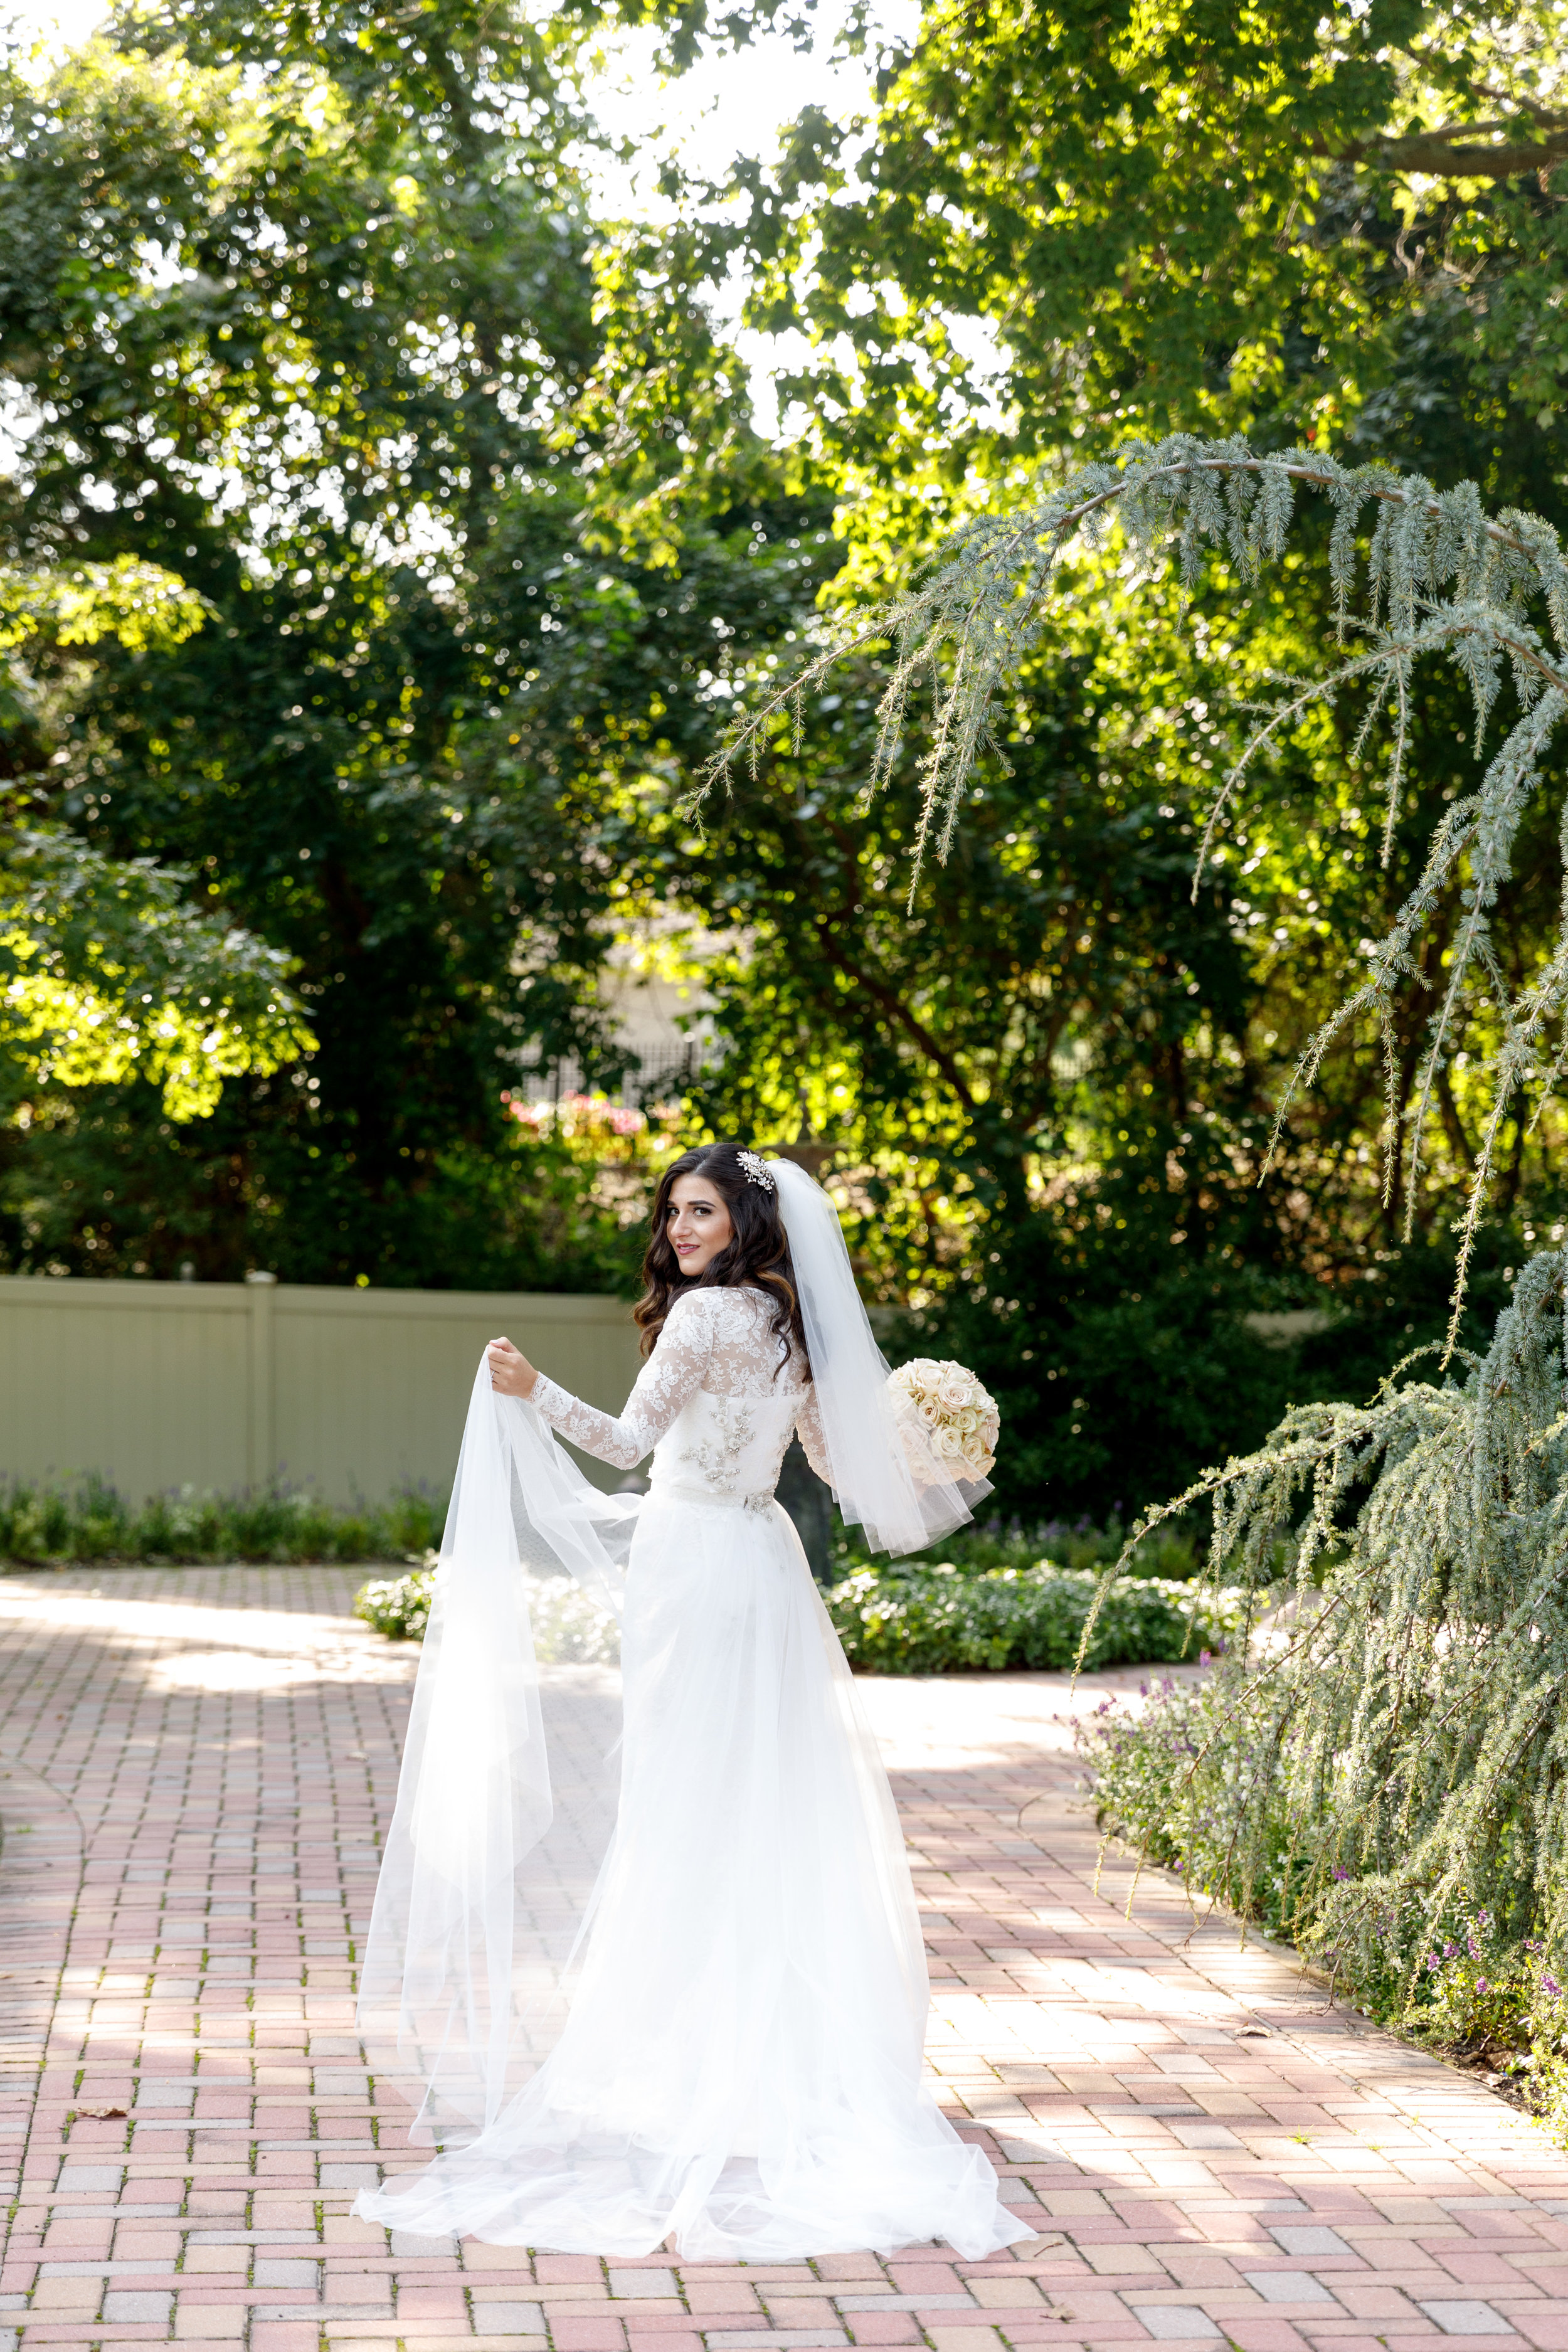 First Look At My Custom Raquel Couture Wedding Dress Esther Santer Fashion Blog NYC Street Style Blogger Outfit OOTD Trendy Fall Ceremony Portrait Photography Bride Groom Beautiful  Outdoor Reception Dancing Inspiration Tulle Train Beading White Lace.JPG